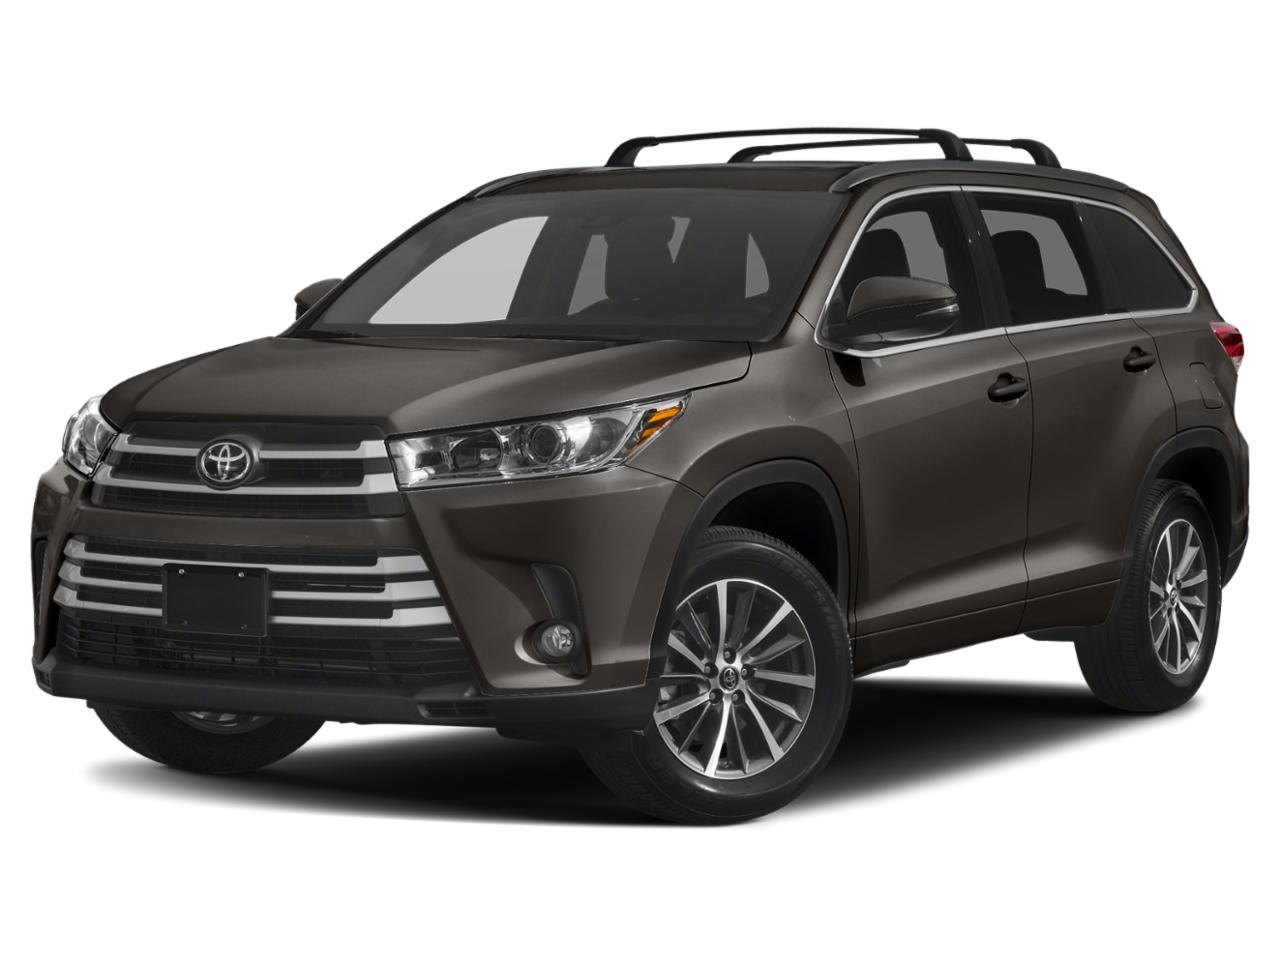 2018 Toyota Highlander Vehicle Photo in Oshkosh, WI 54904